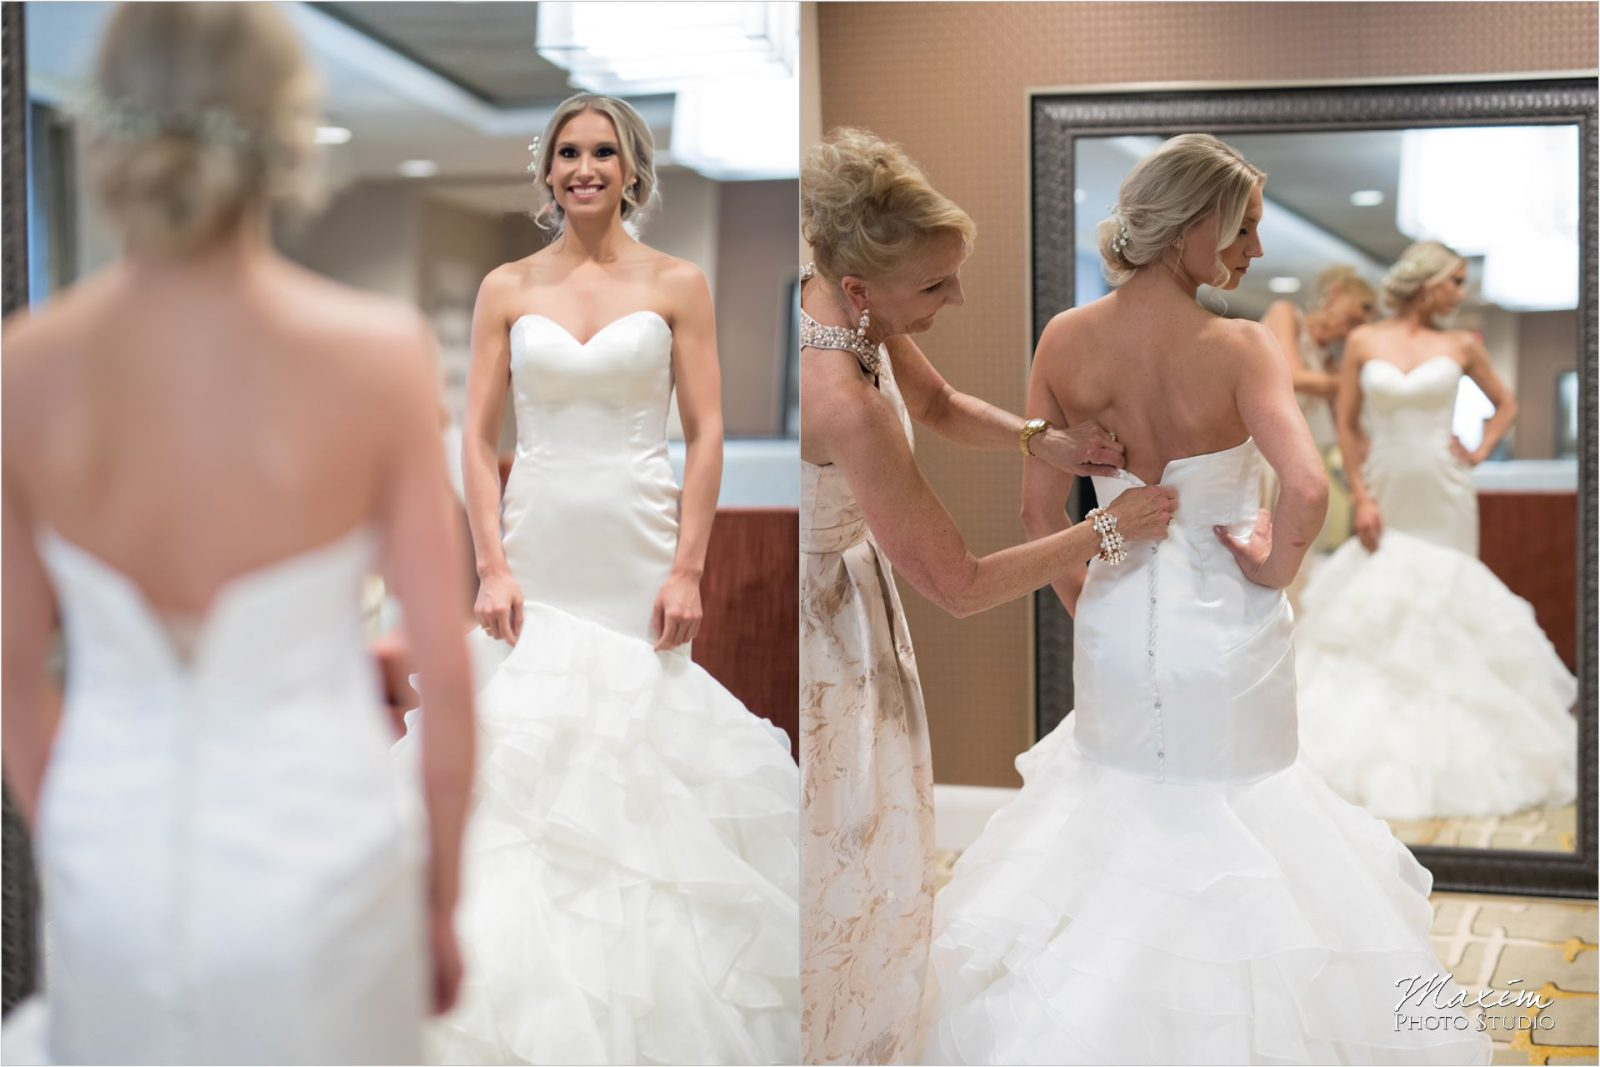 Phoenix Cincinnati Wedding bride Preparations